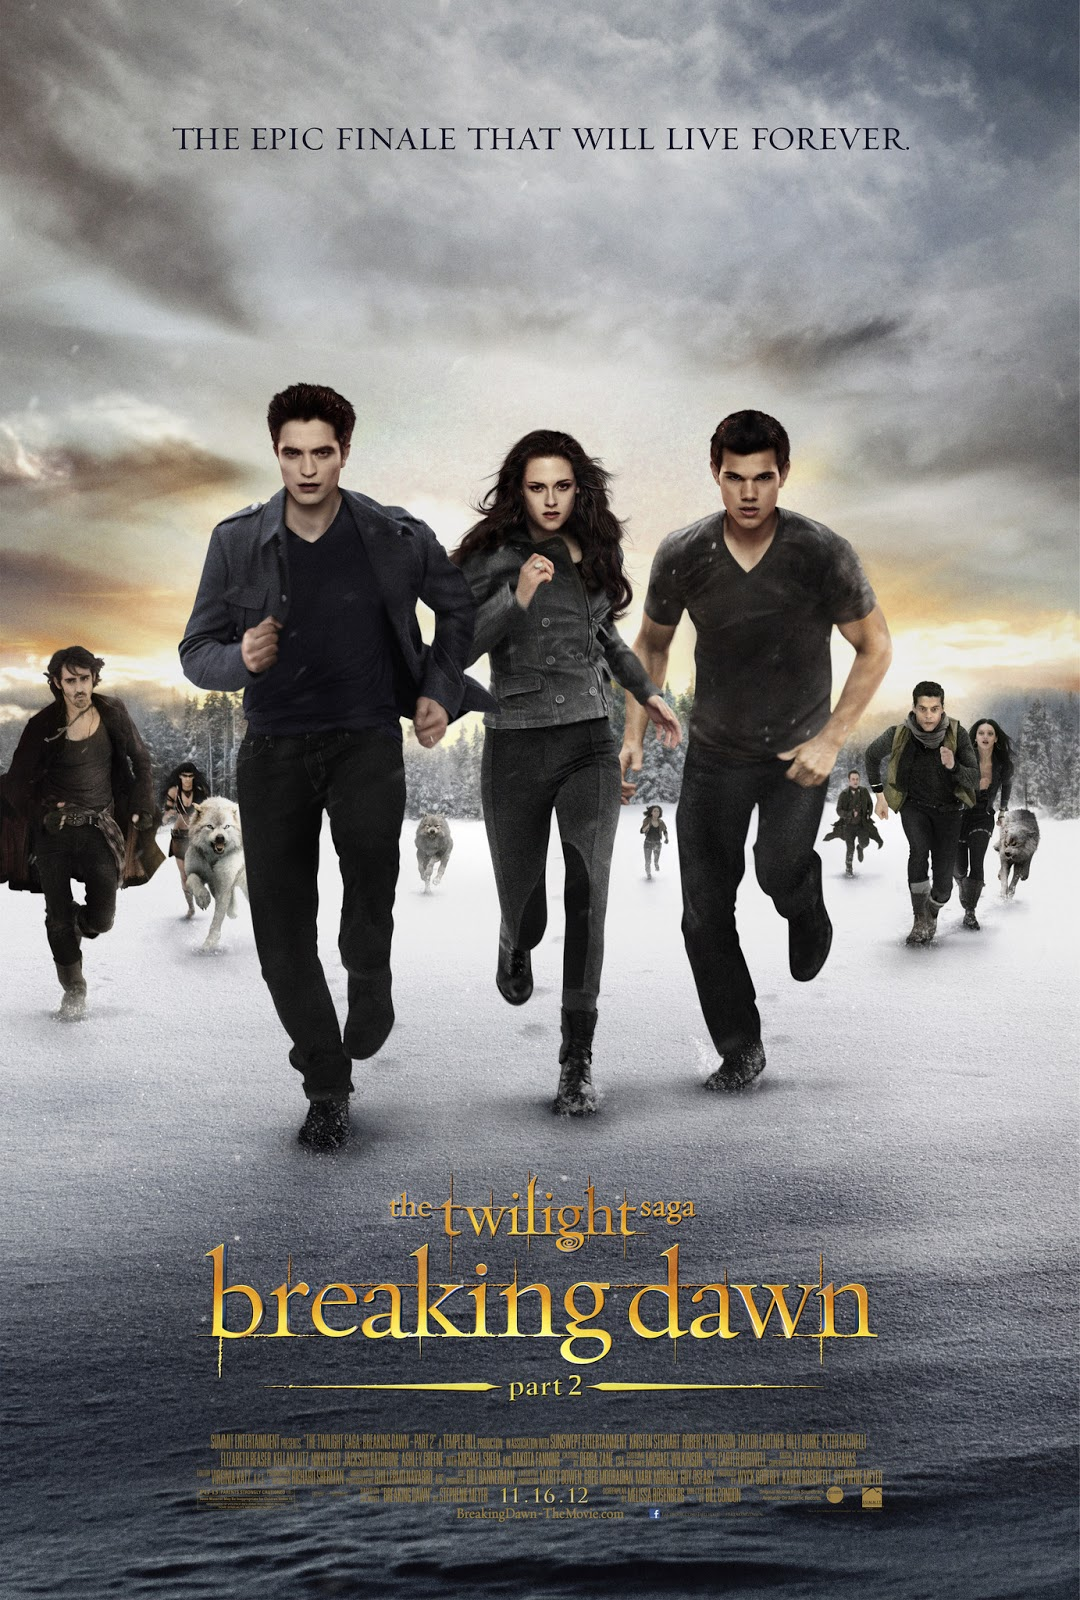 http://2.bp.blogspot.com/-ePOiypYWoPQ/UIsAOz6MzWI/AAAAAAAABuU/5kwlaSmv_W0/s1600/Poster_The_Twilight_Breaking_Dawn_part_2_.jpg